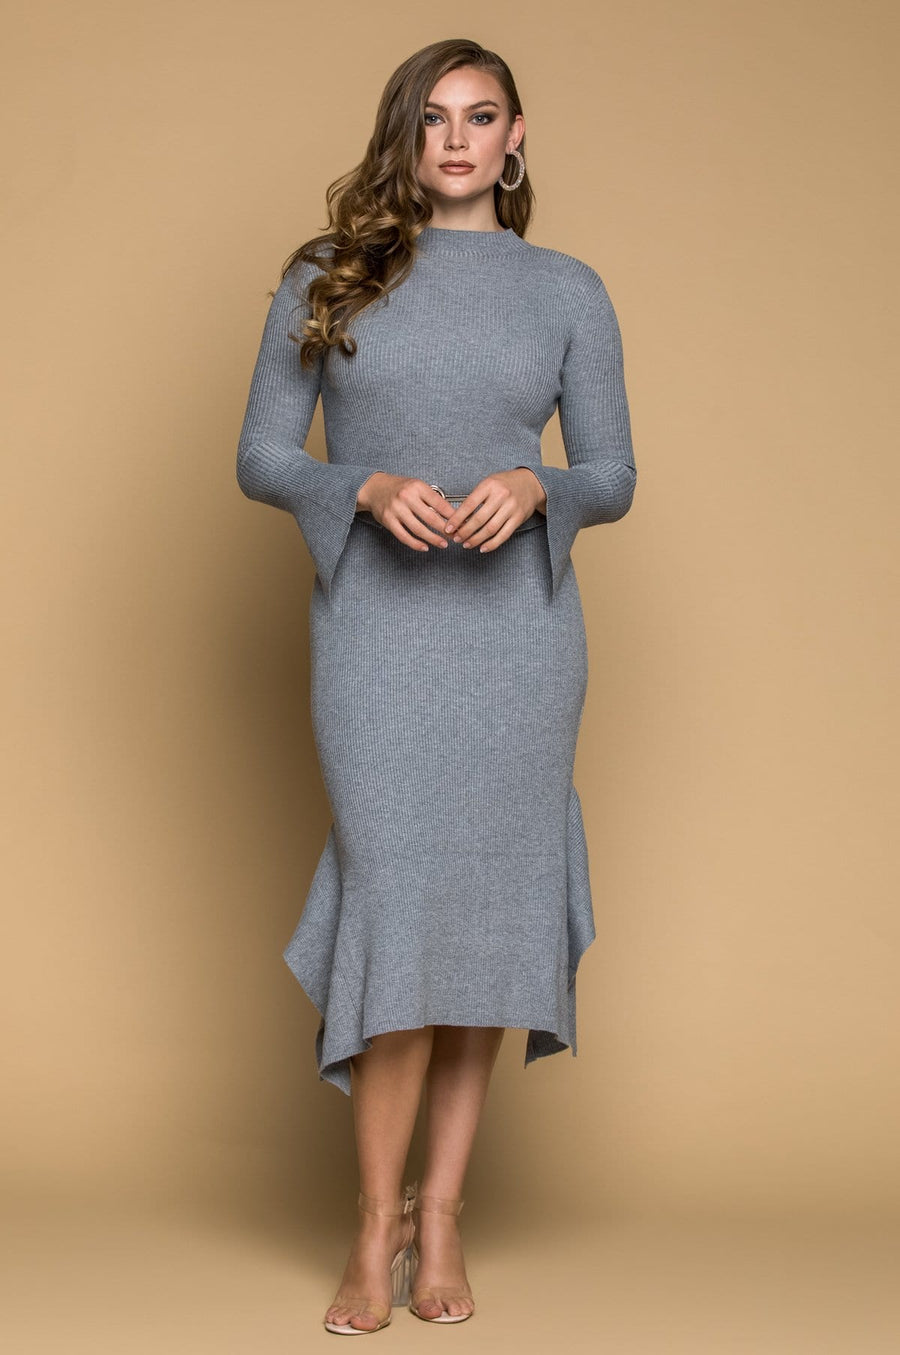 'Catalina' Heather Gray Sweater Dress